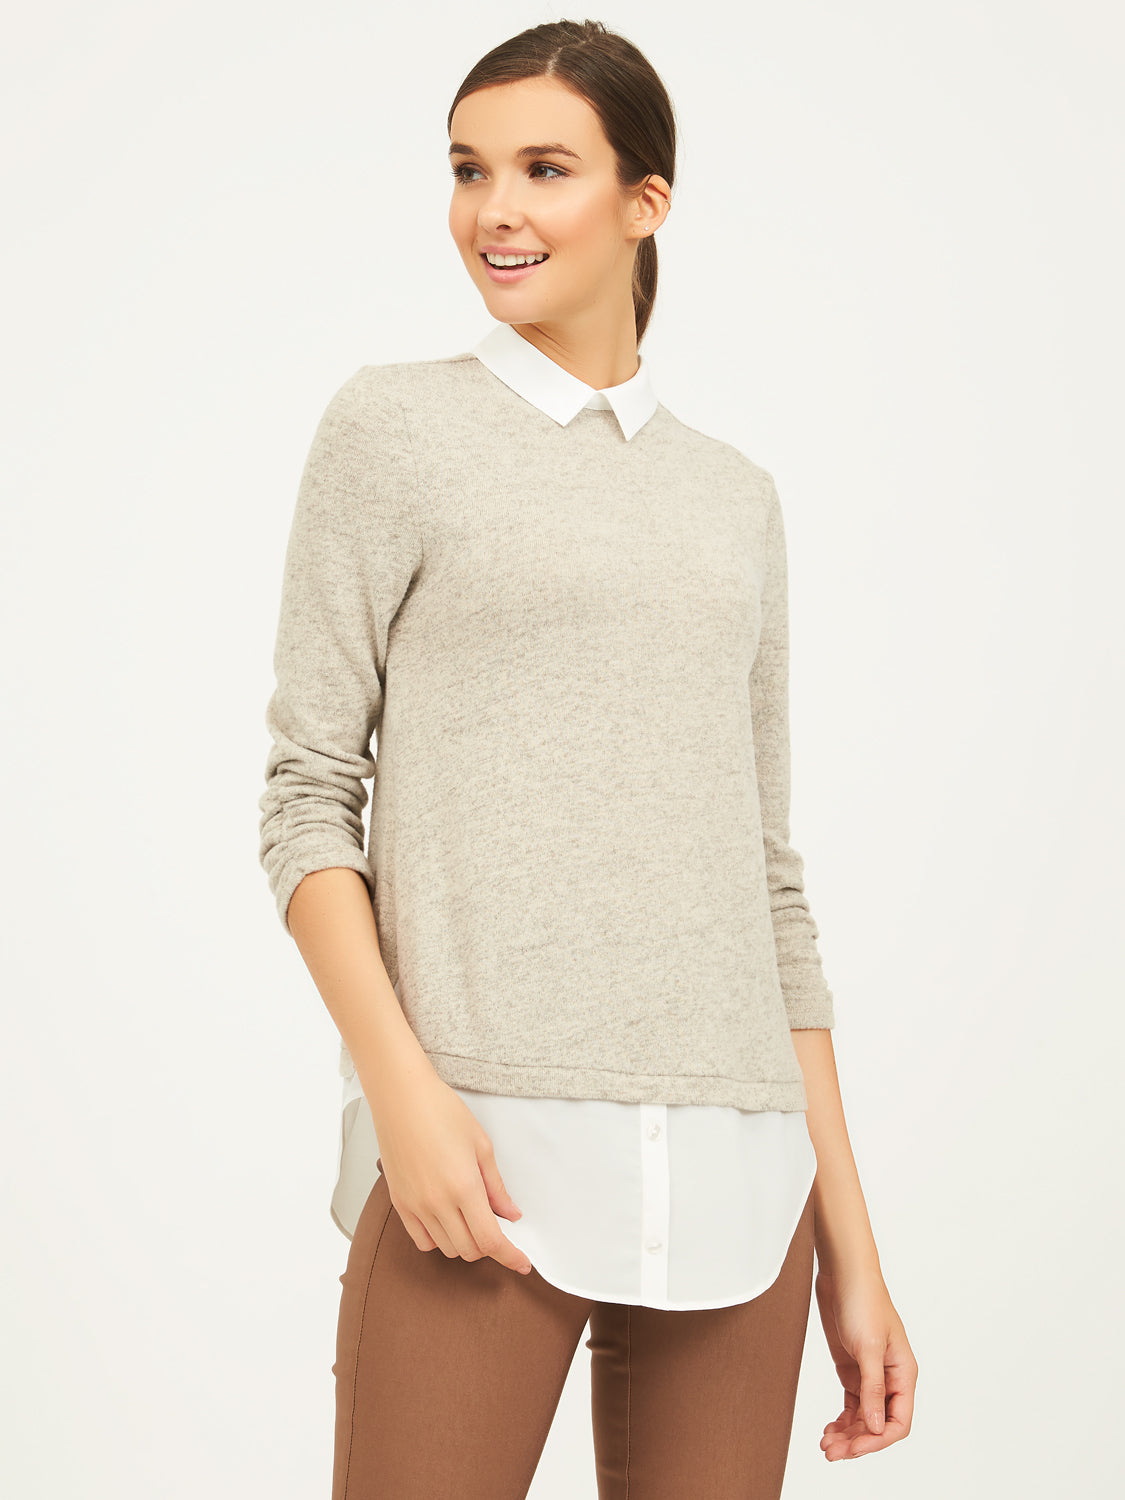 ¾ Ruched Sleeve Mélange Top